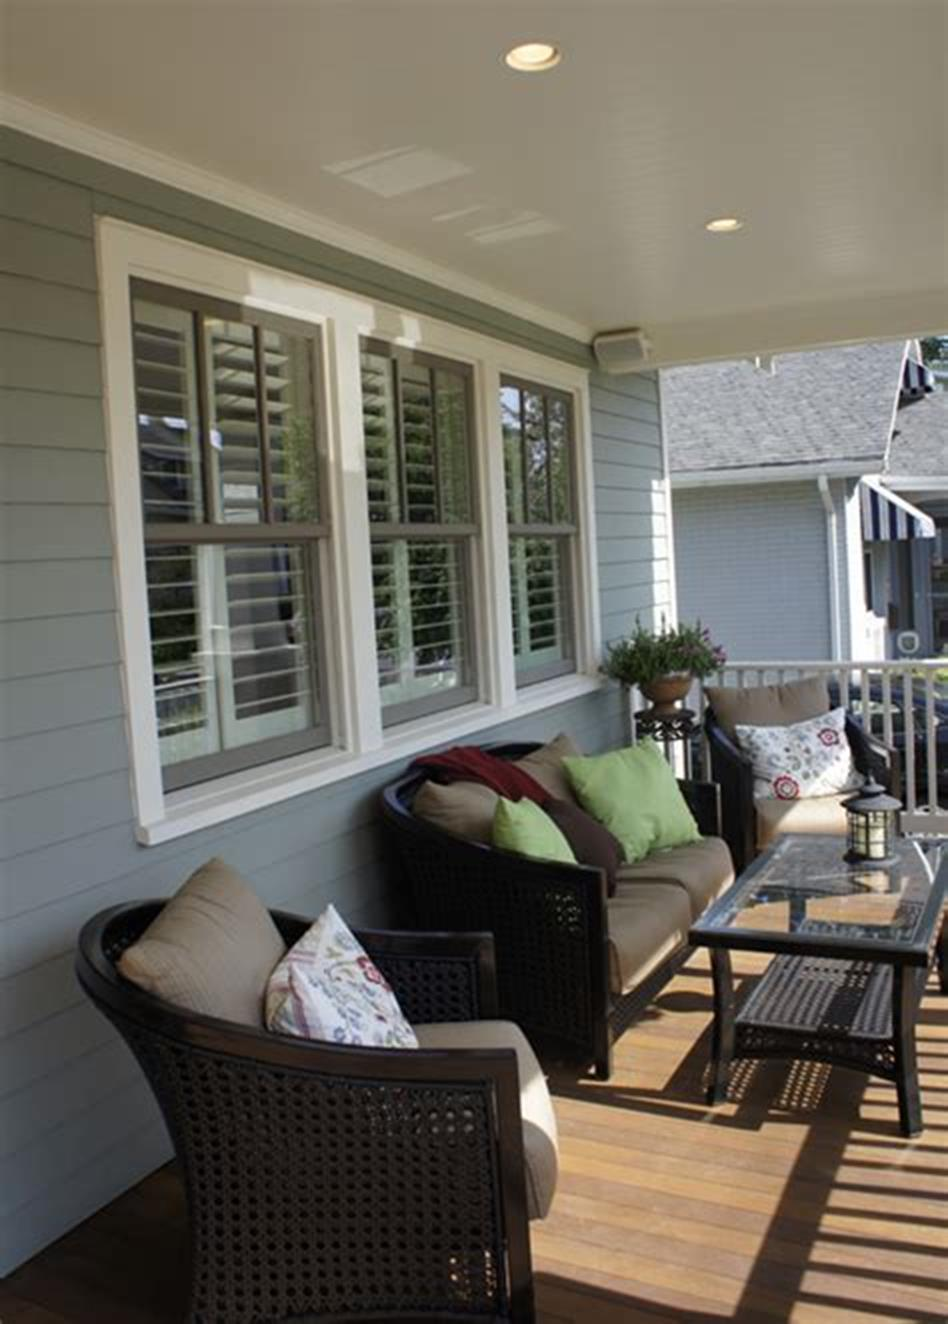 50 Most Popular Affordable Sunroom Design Ideas on a Budget 53